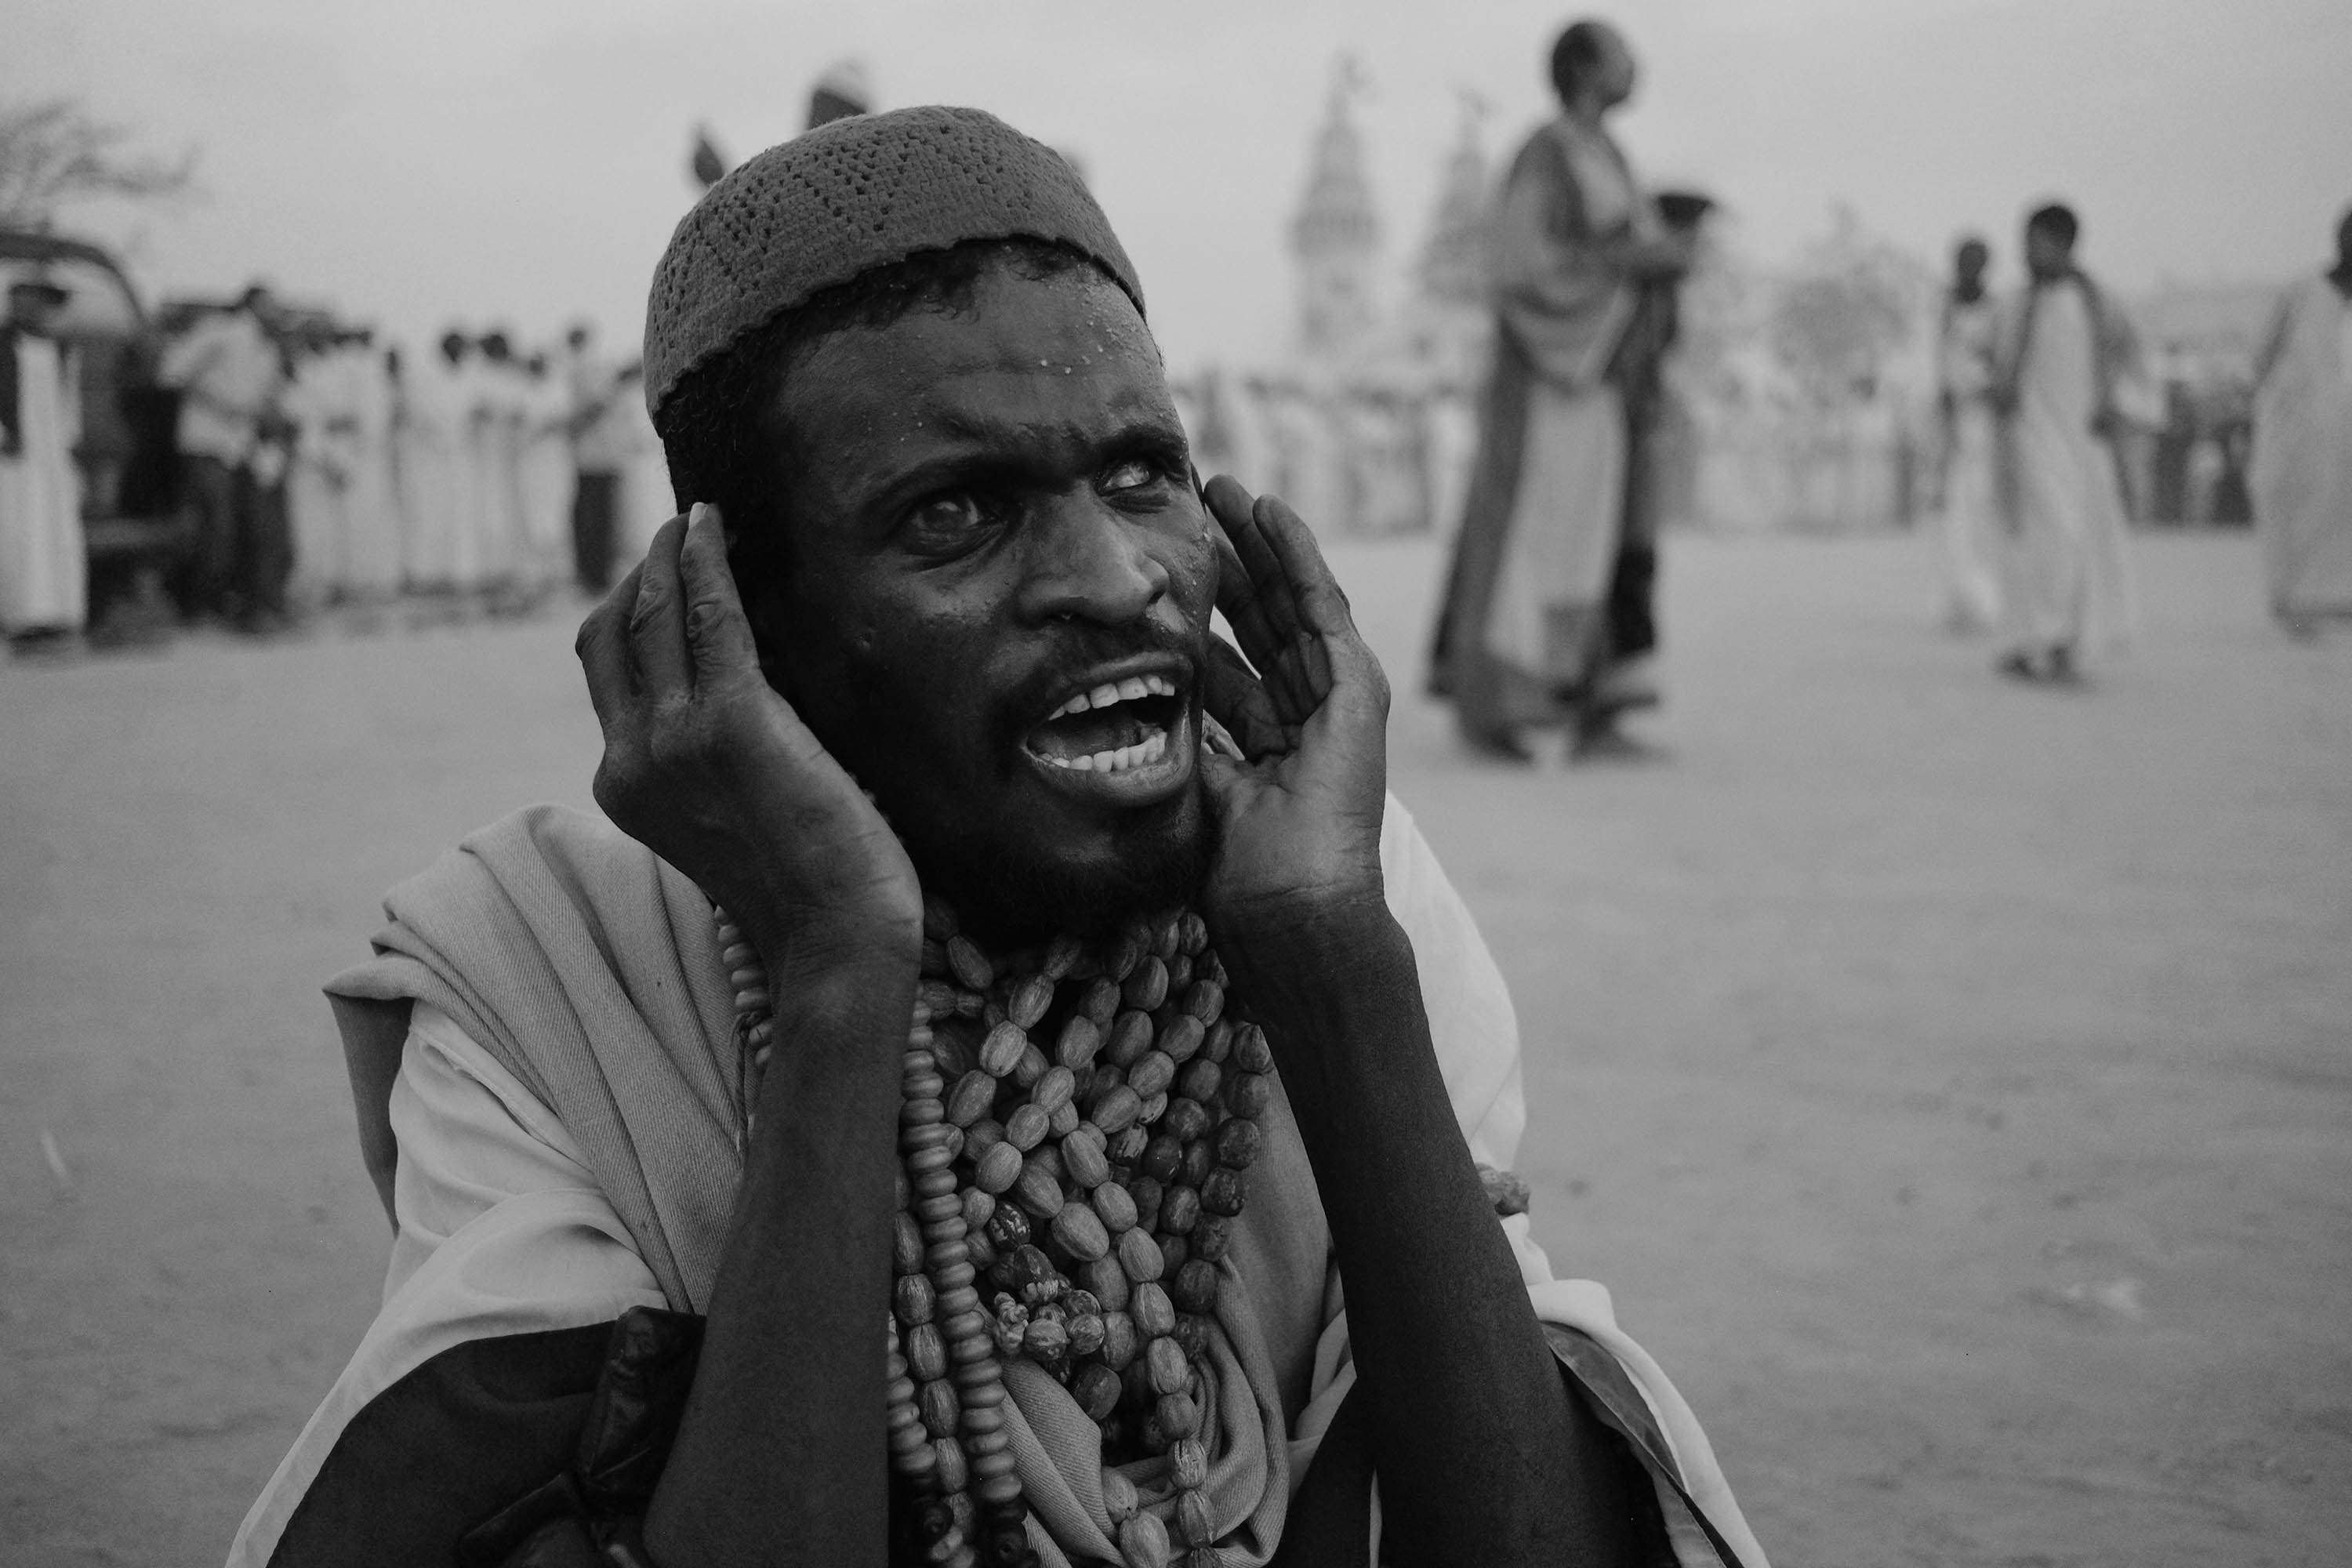 10. Participant of ''Zikr'' screams in excitement. Omdurman. Sudan. 2017